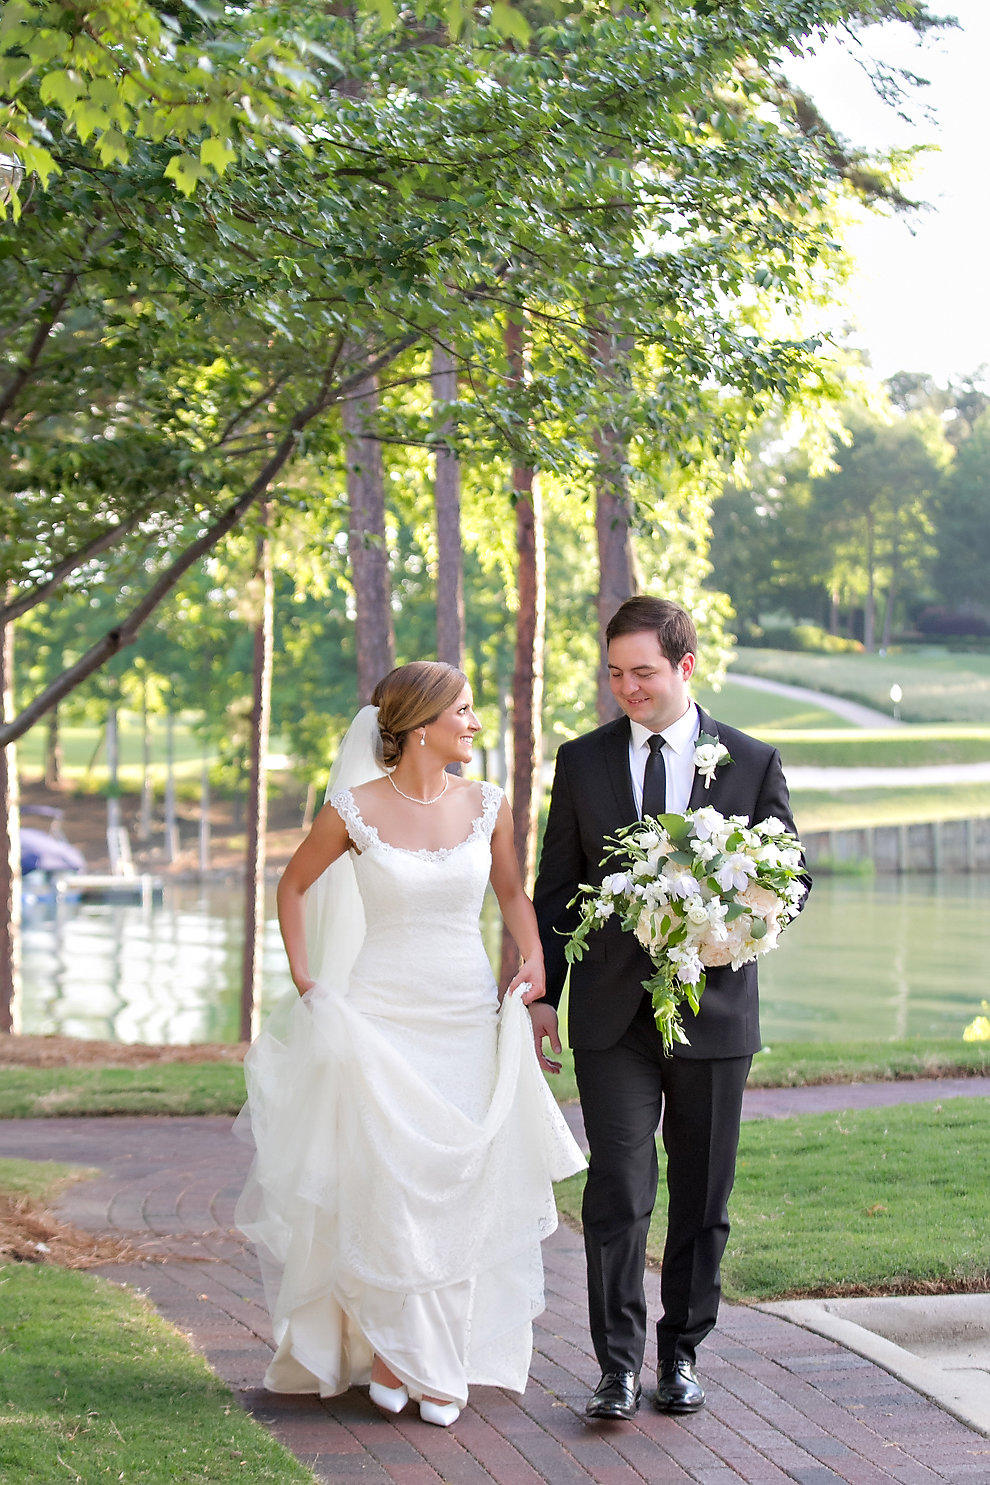 Charlotte North Carolina Wedding, Trump National Golf Course Wedding, Lakeside wedding, Blush Ivory and Greenery Wedding Design, The Graceful Host, Bridal Bouquet, Bridal Fashion, Lace Wedding Dress, Spring Wedding, Elegant Wedding